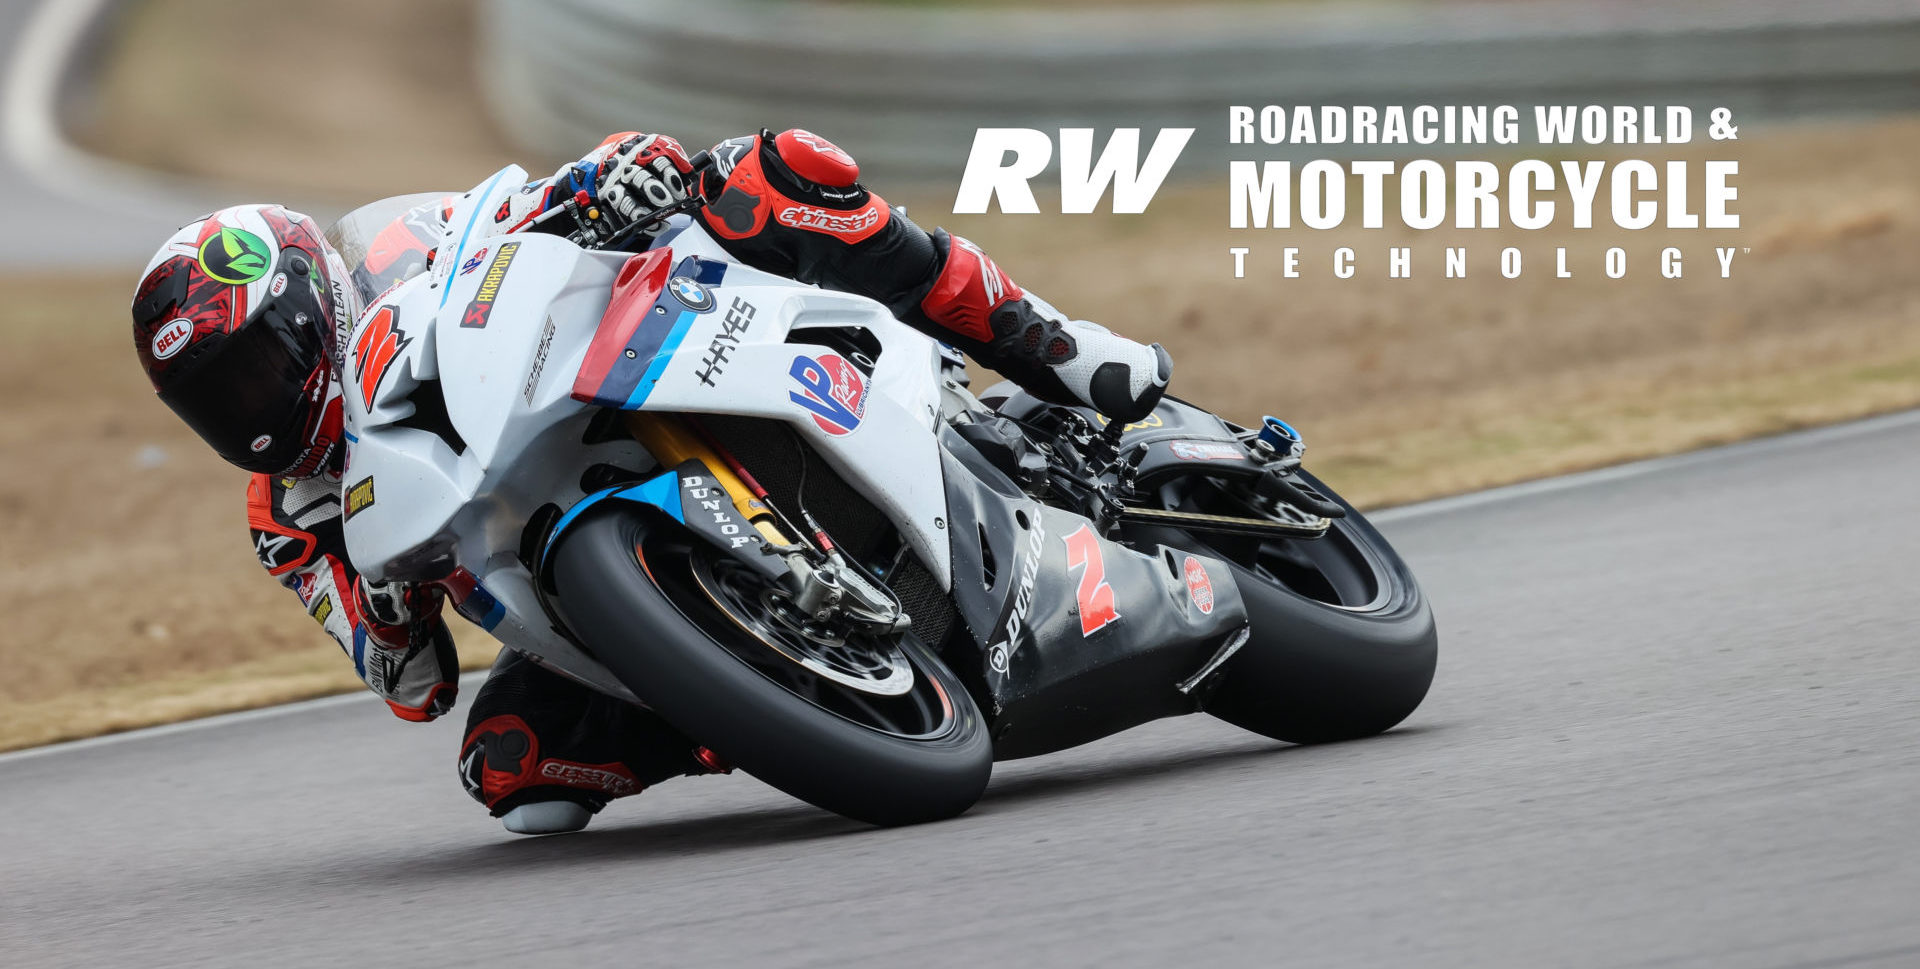 Josh Herrin (2) on the Scheibe Racing BMW Superbike during the official 2020 MotoAmerica pre-season test at Barber Motorsports Park. Photo by Brian J. Nelson.